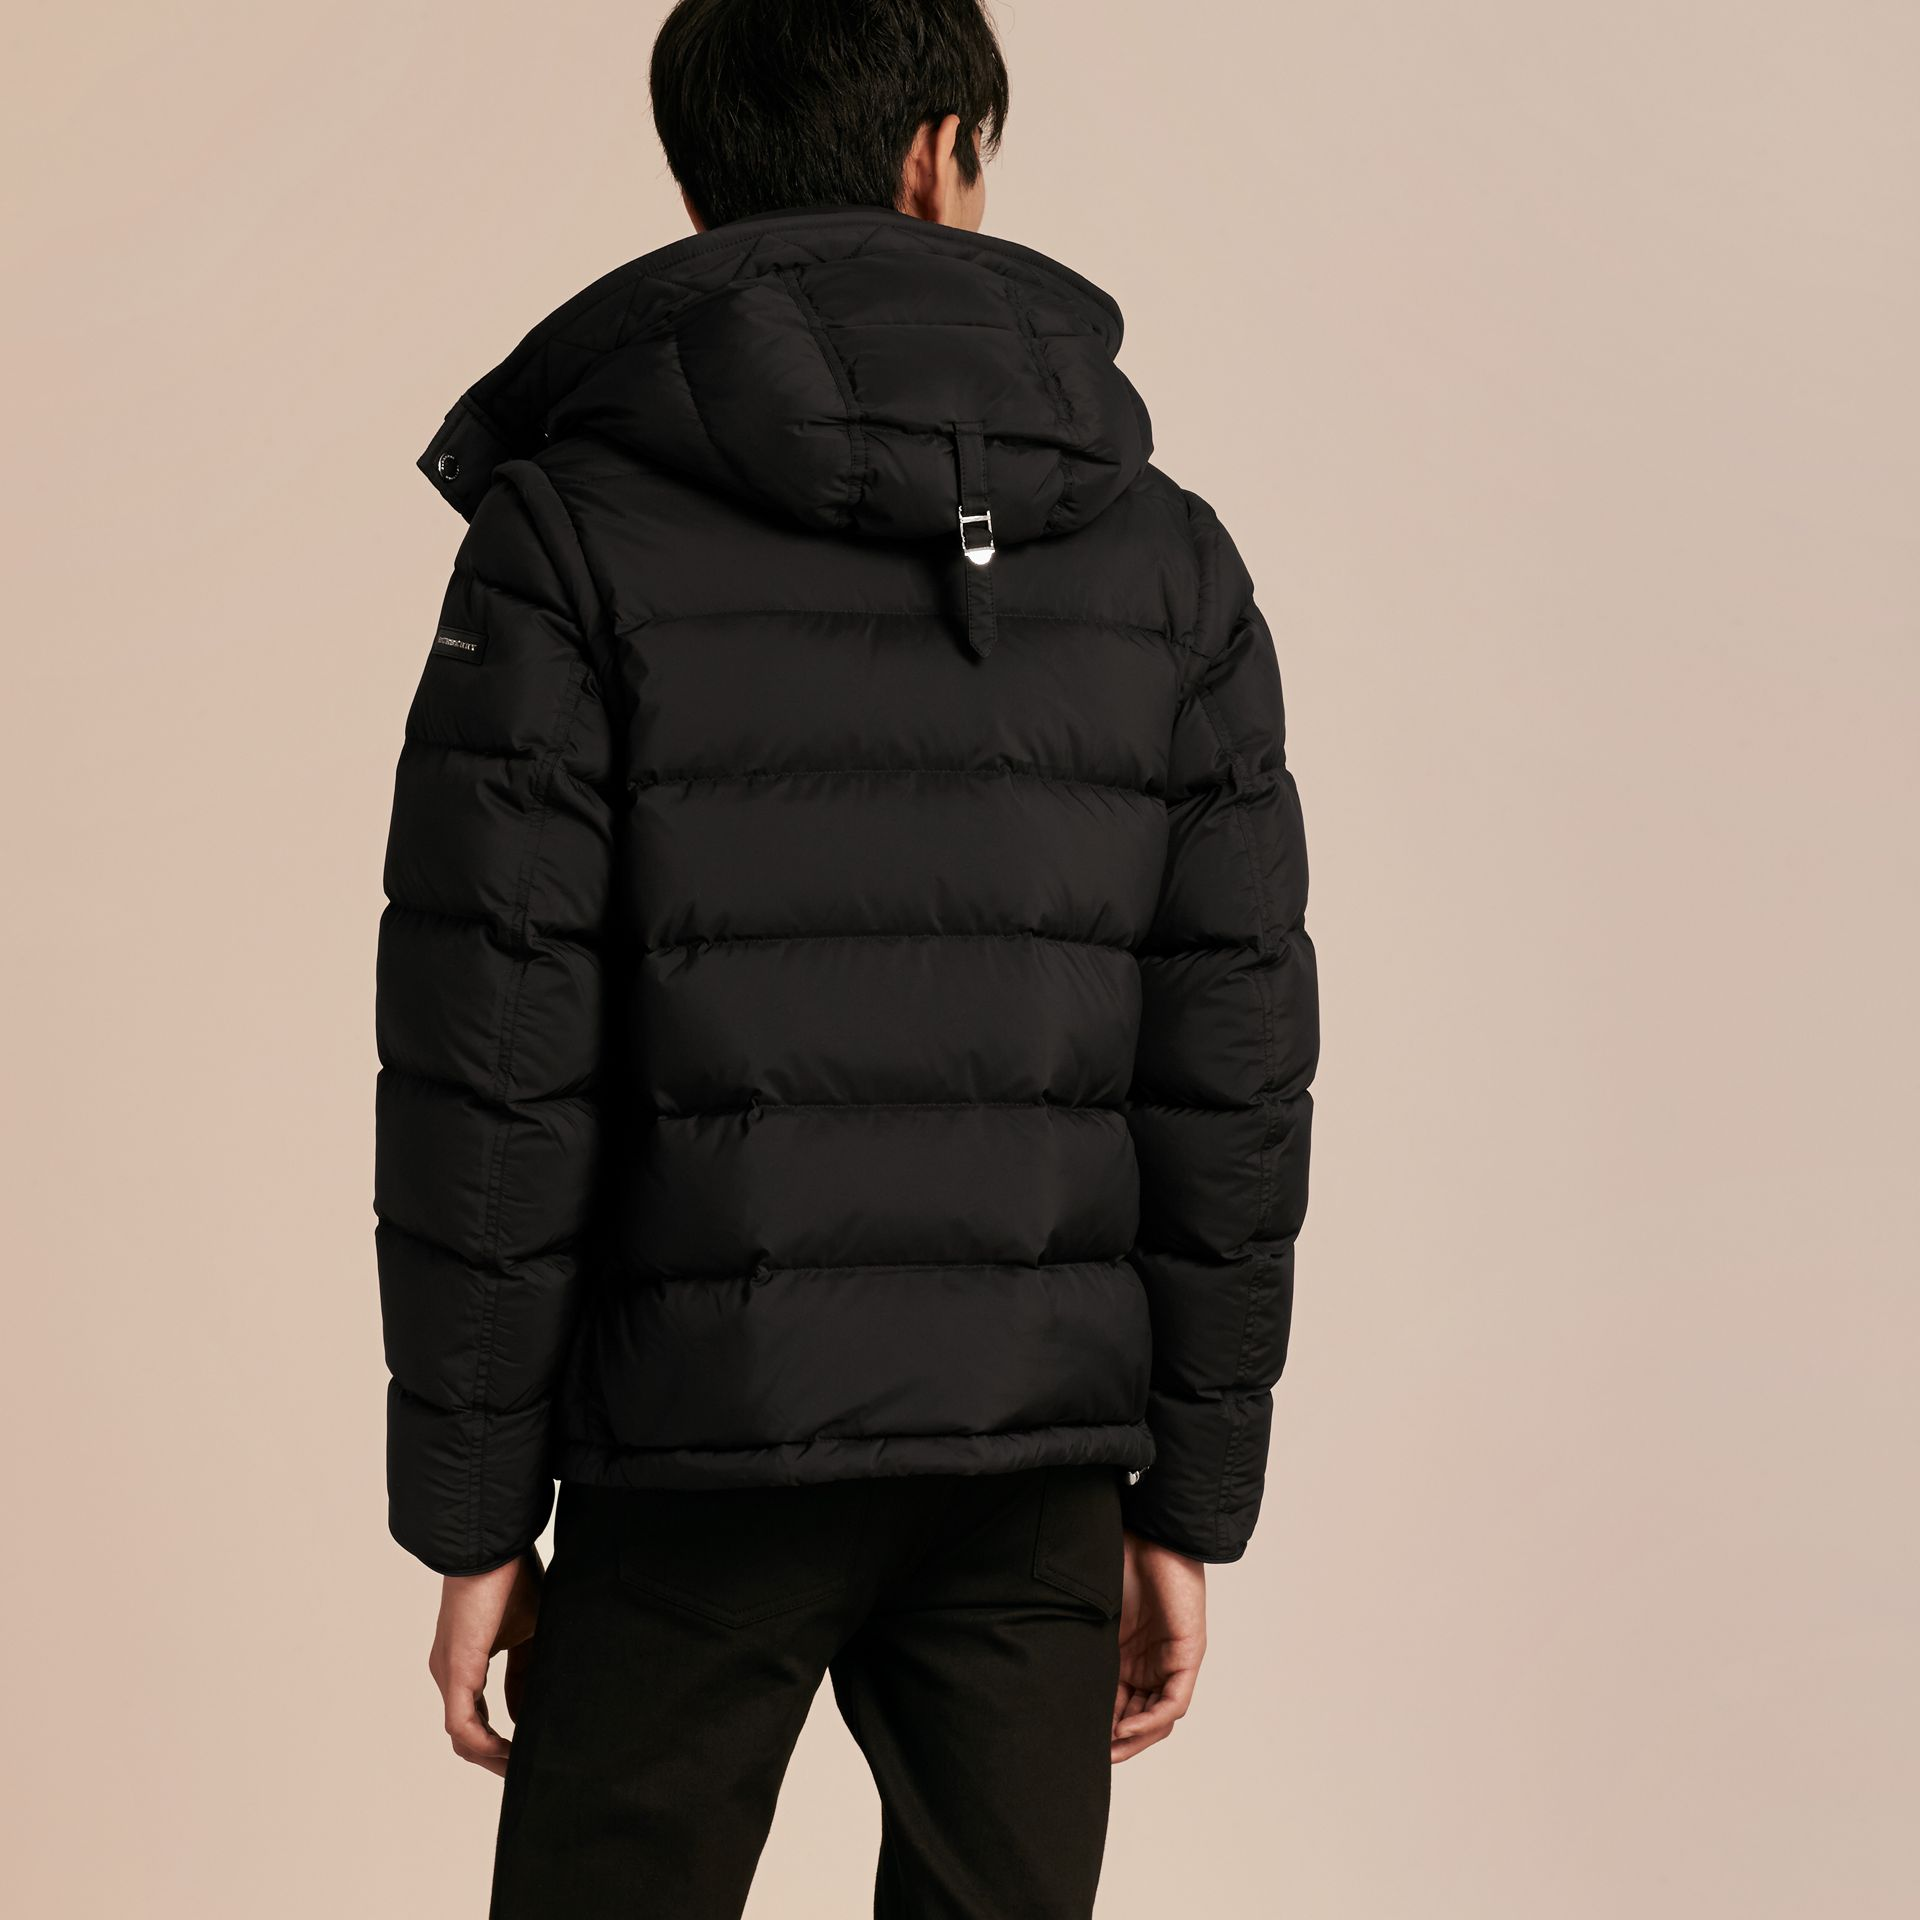 Black Down-filled Hooded Jacket with Detachable Sleeves Black - gallery image 3